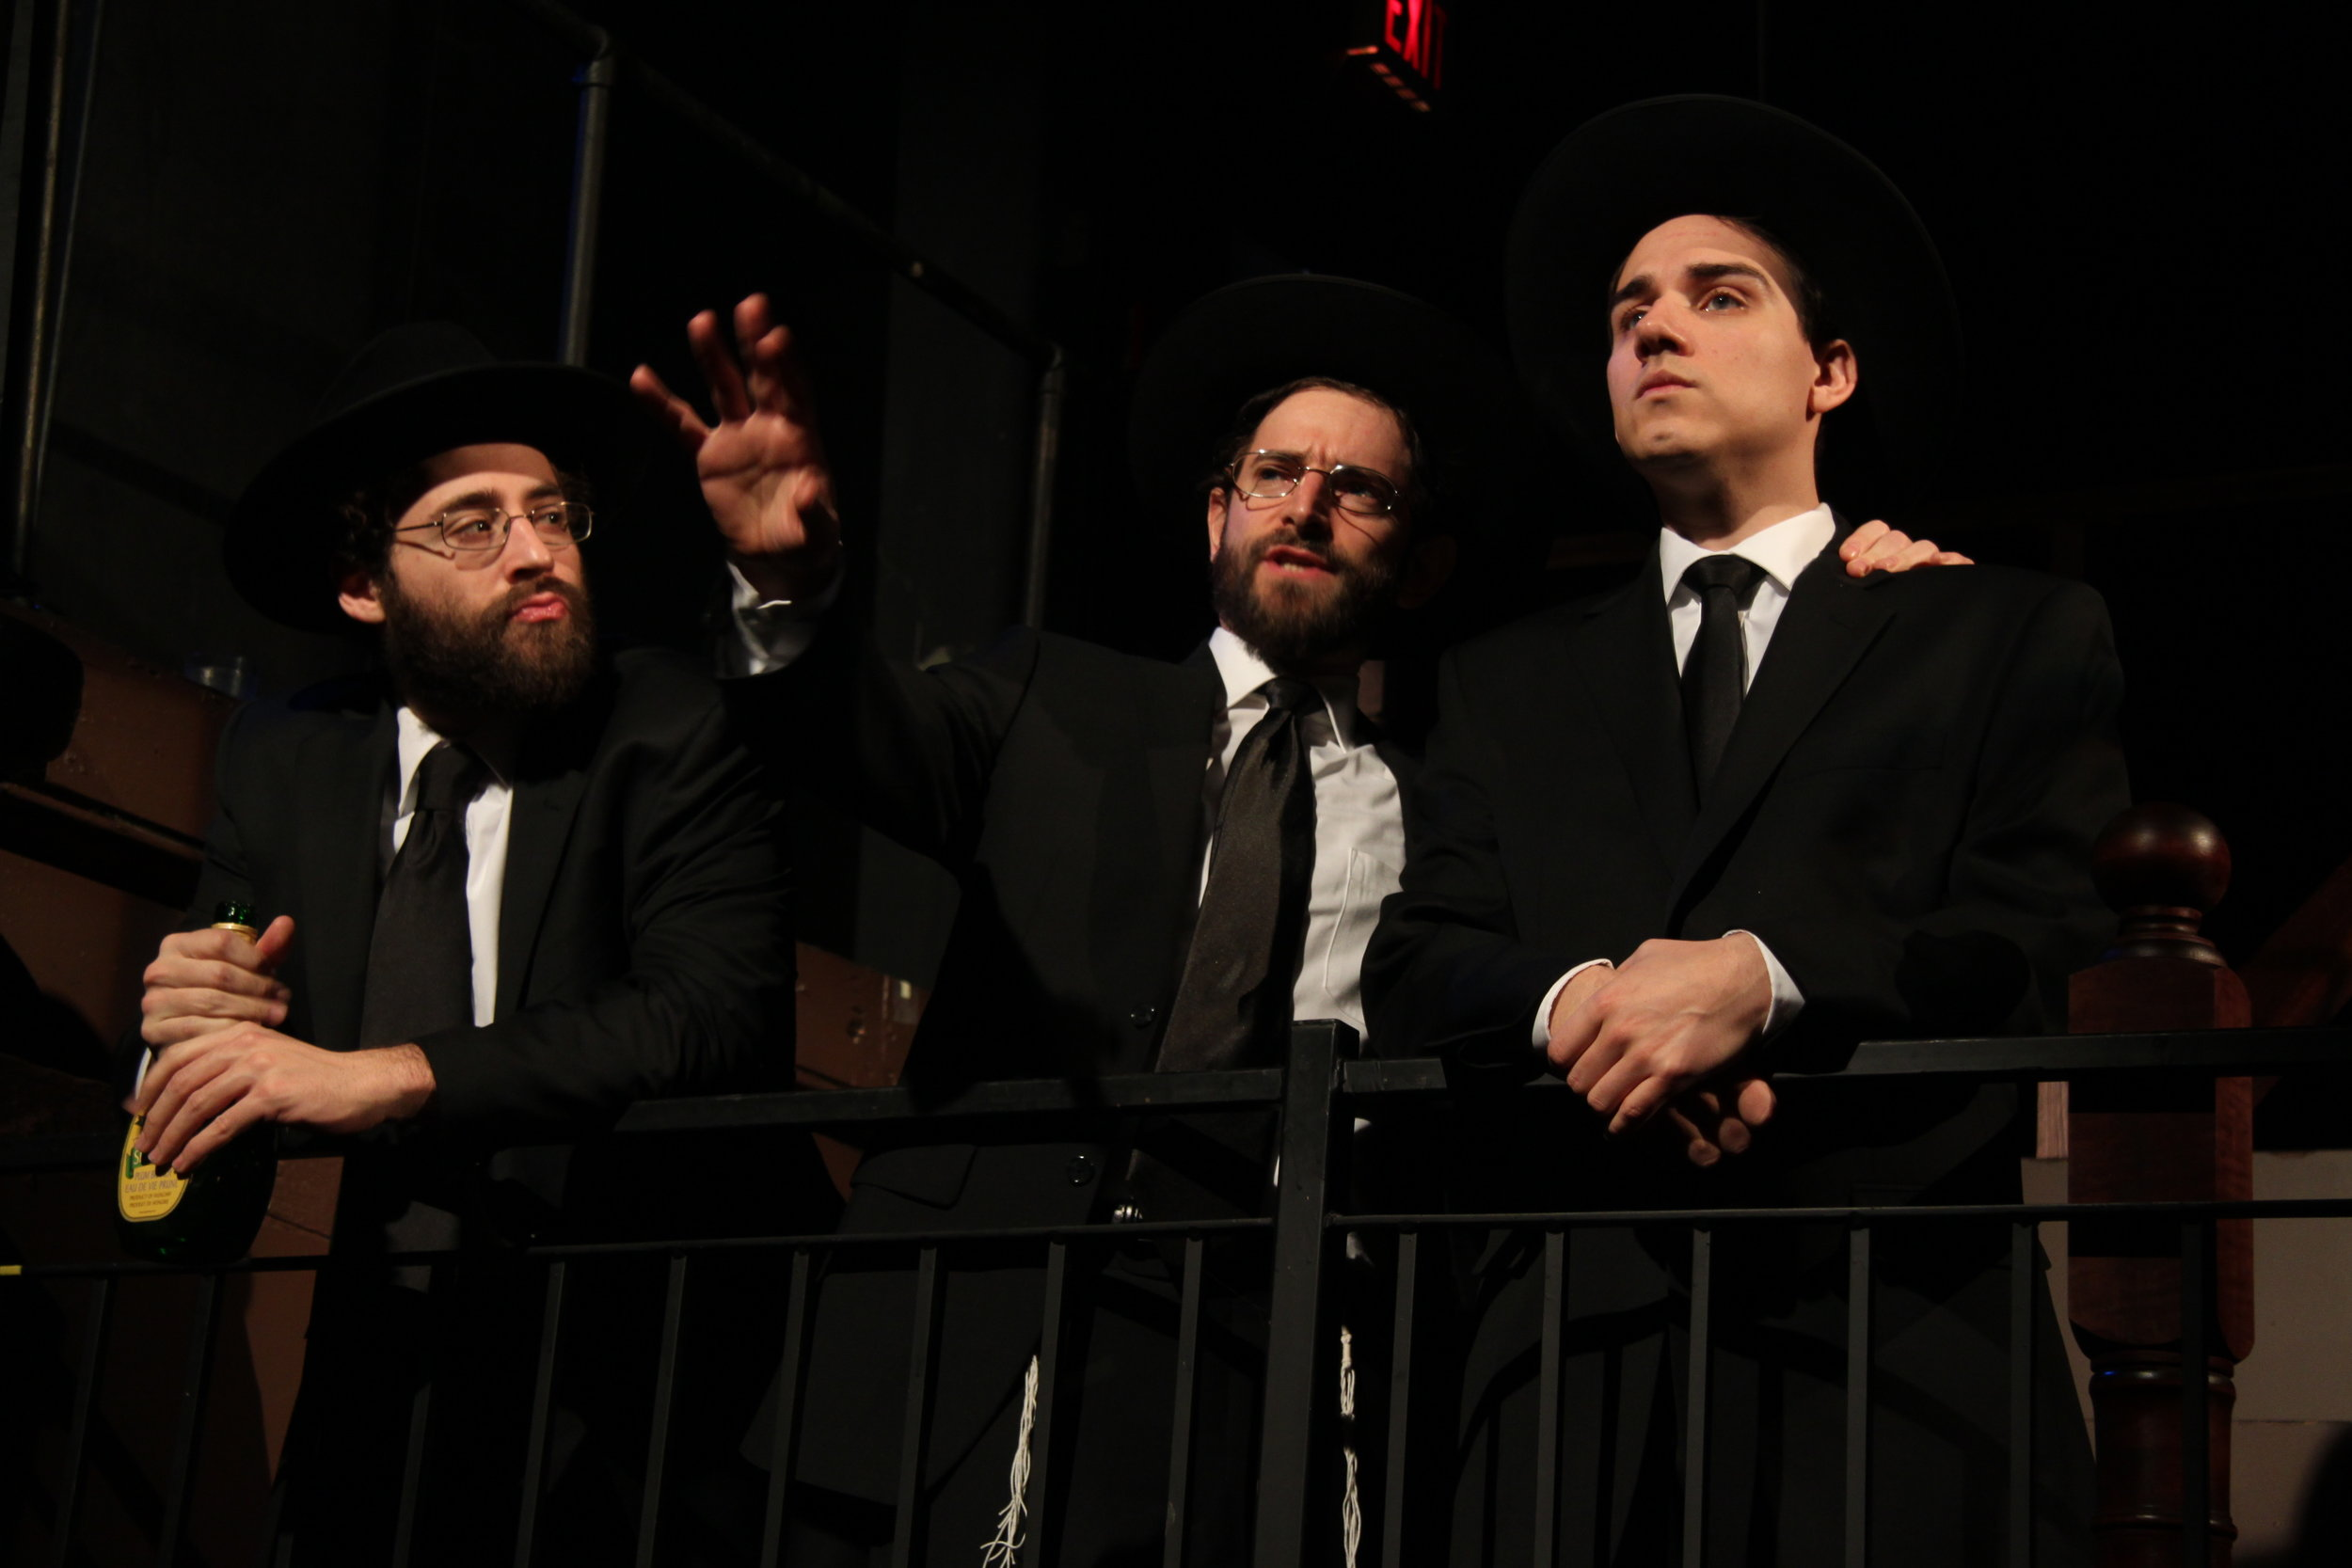 Michael Rubenfeld as Menachem, Jordan Pettle as Ephraim, and Aaron Willis as Chaim in YICHUD (Seclusion)